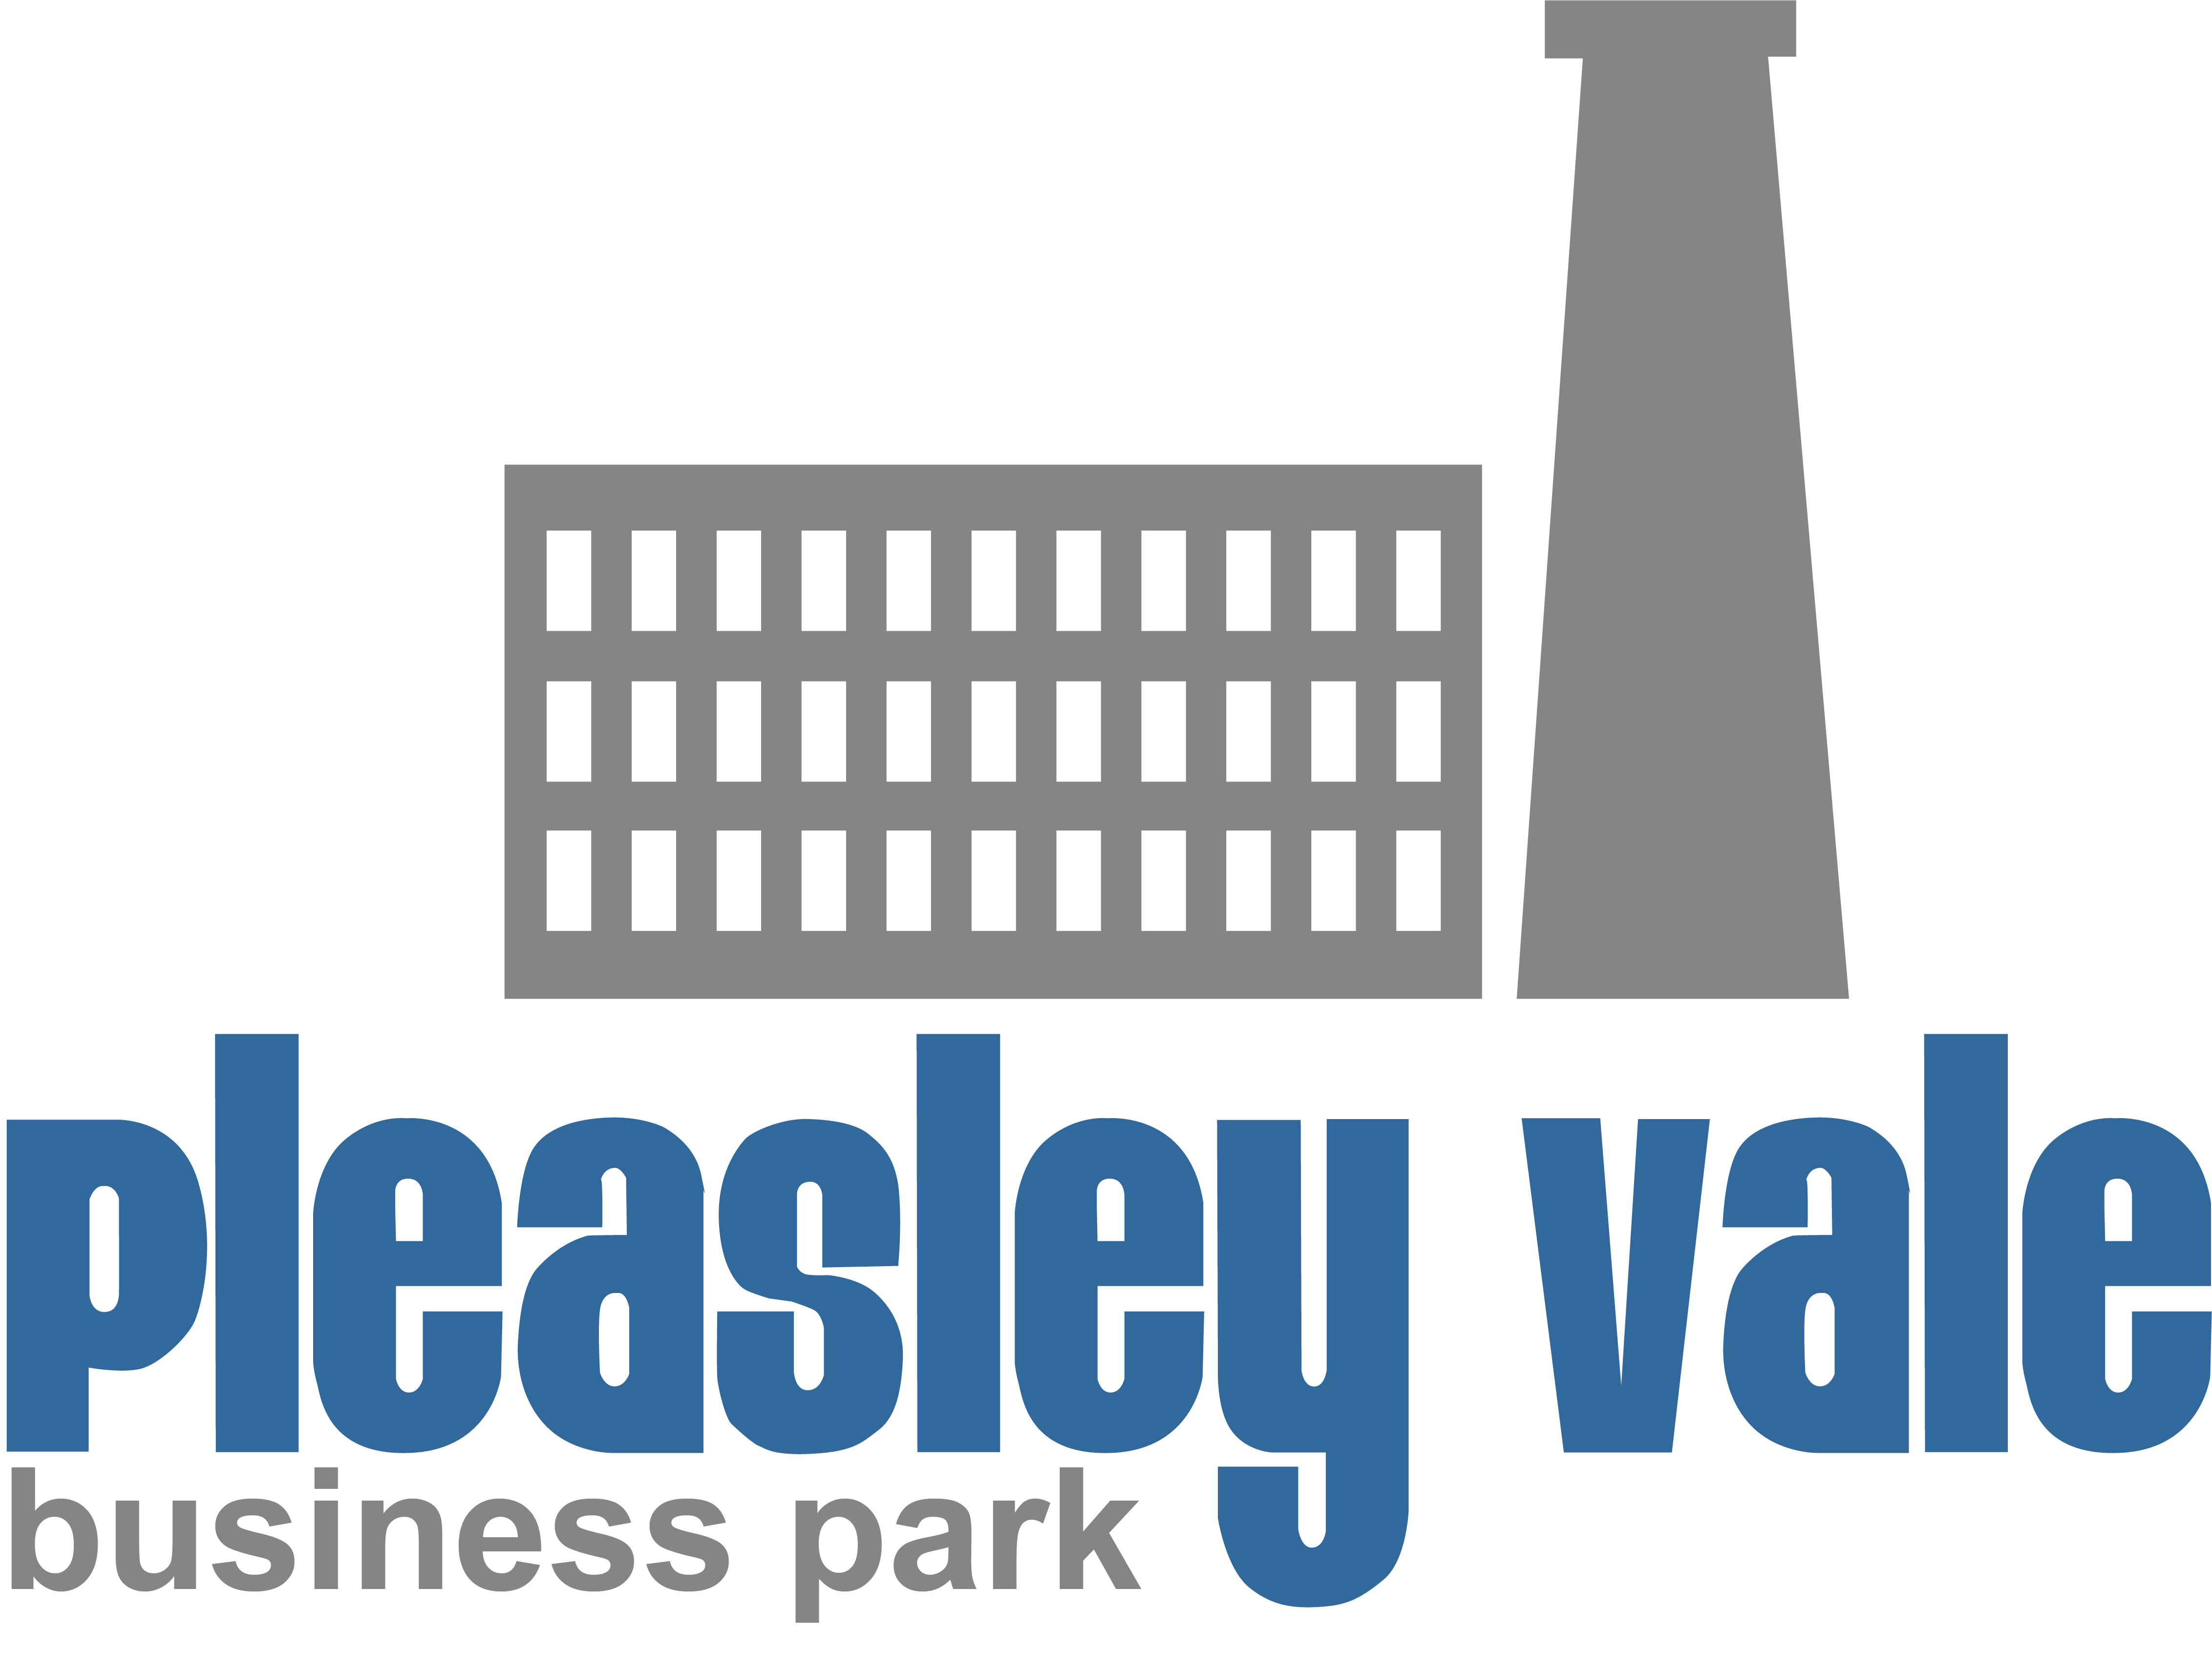 Pleasley Valve Business Park